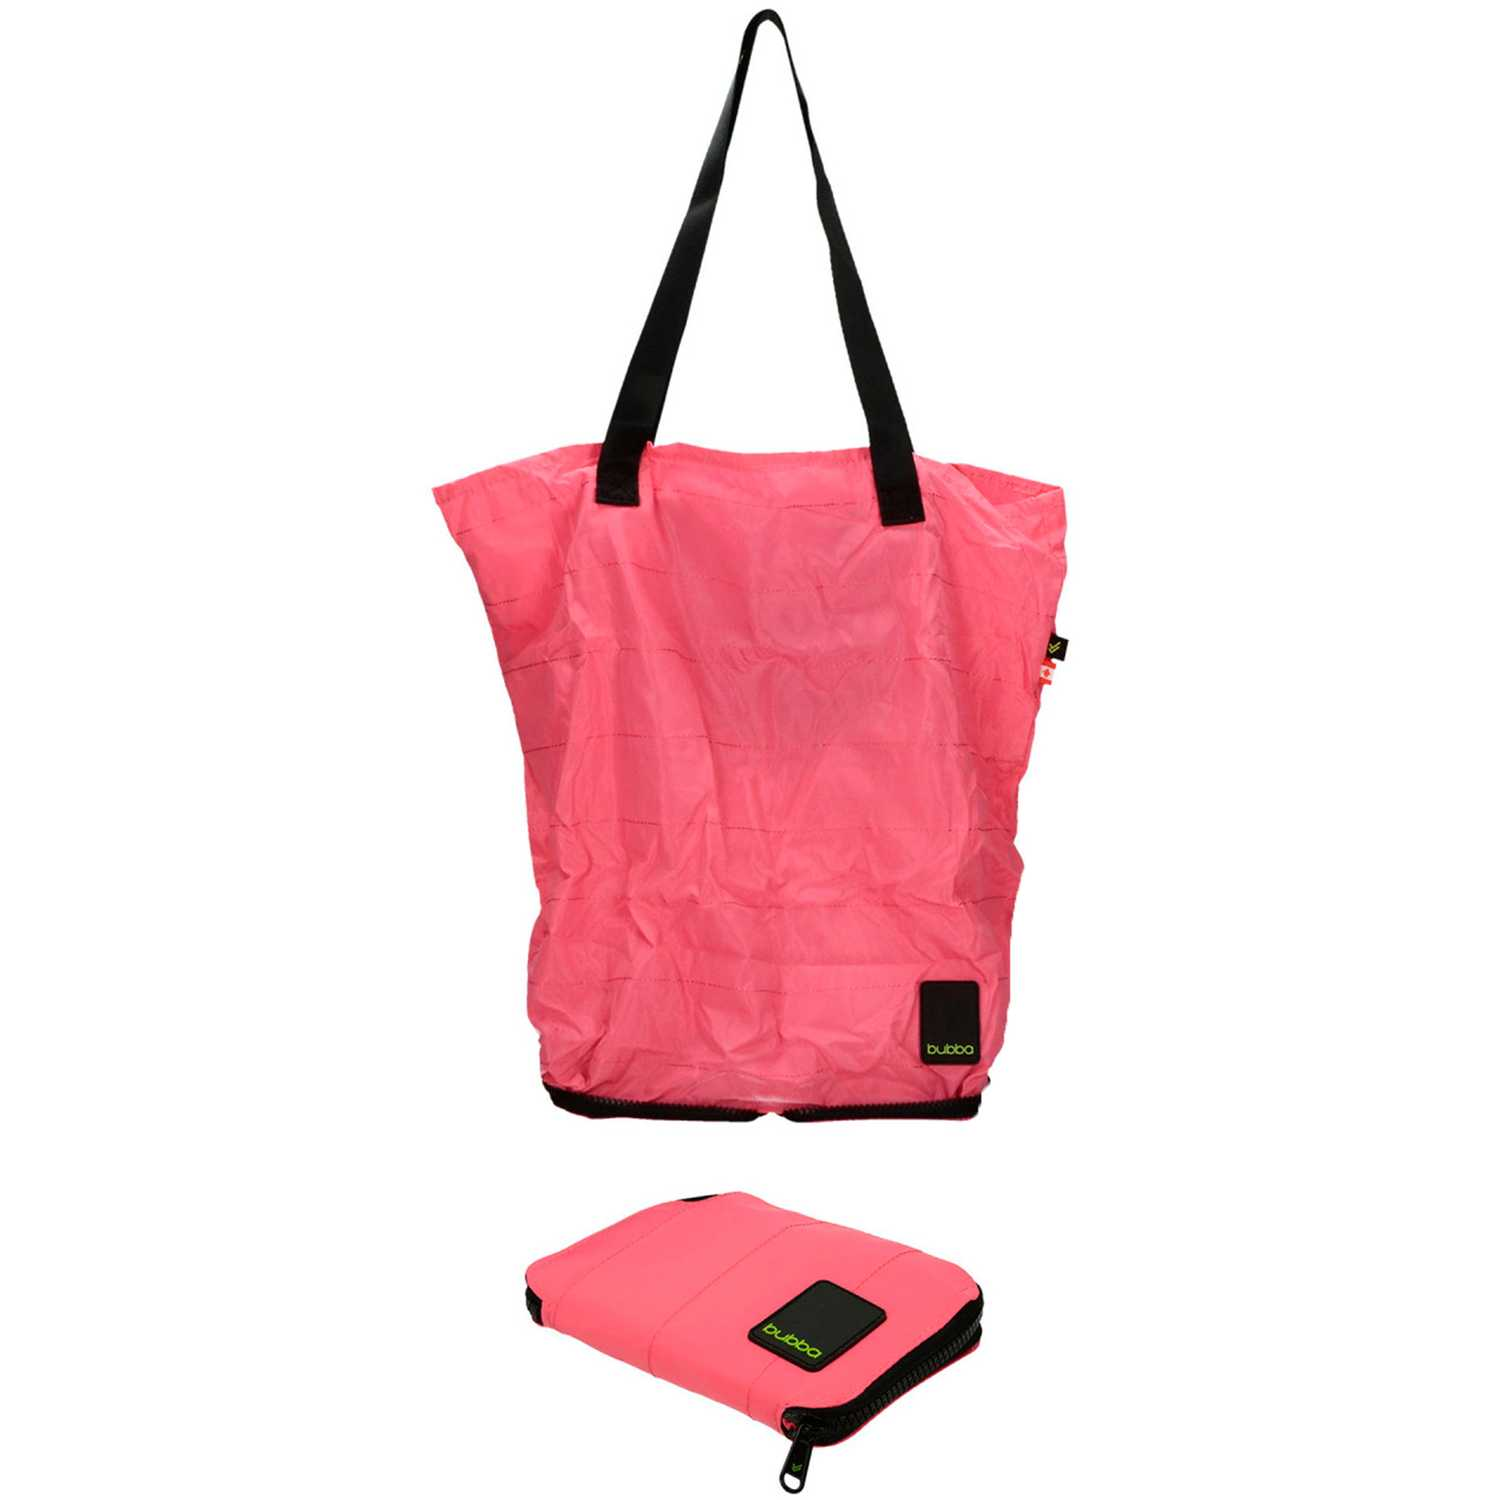 BUBBA Shopping Bag Bubba Rosado / negro bolsos de lazo